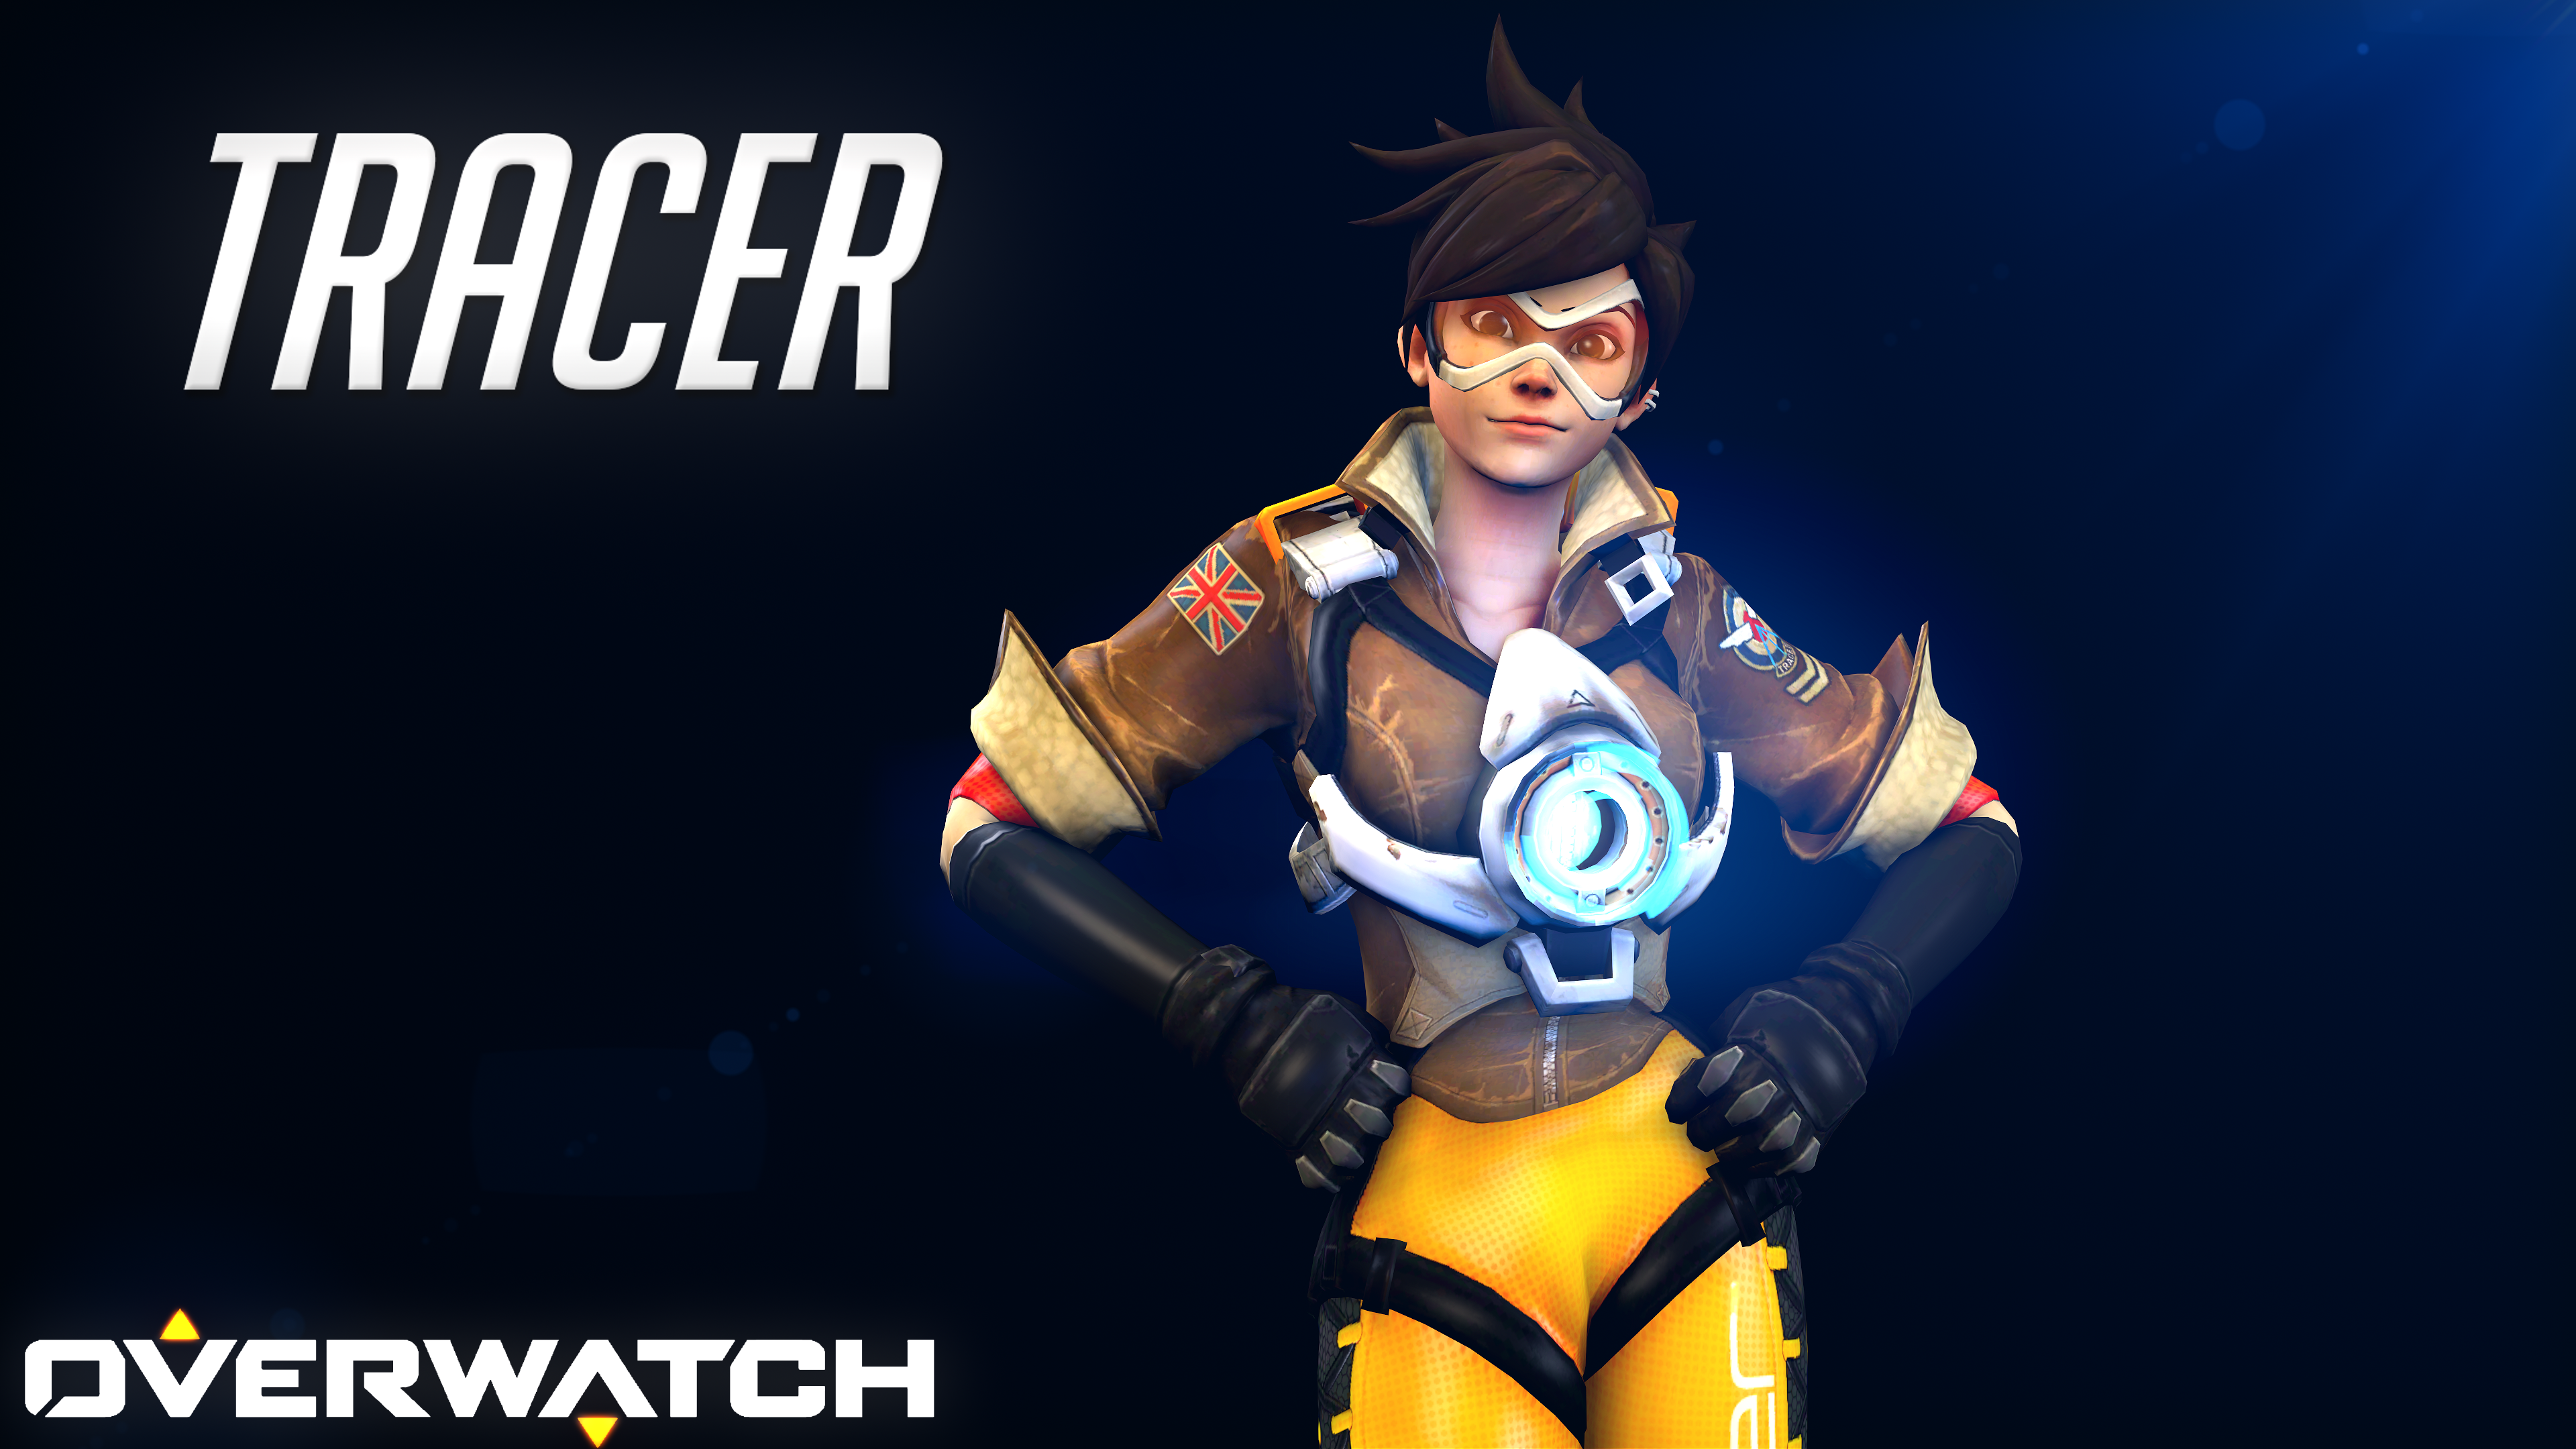 SFM] Overwatch - Tracer Test - YouTube